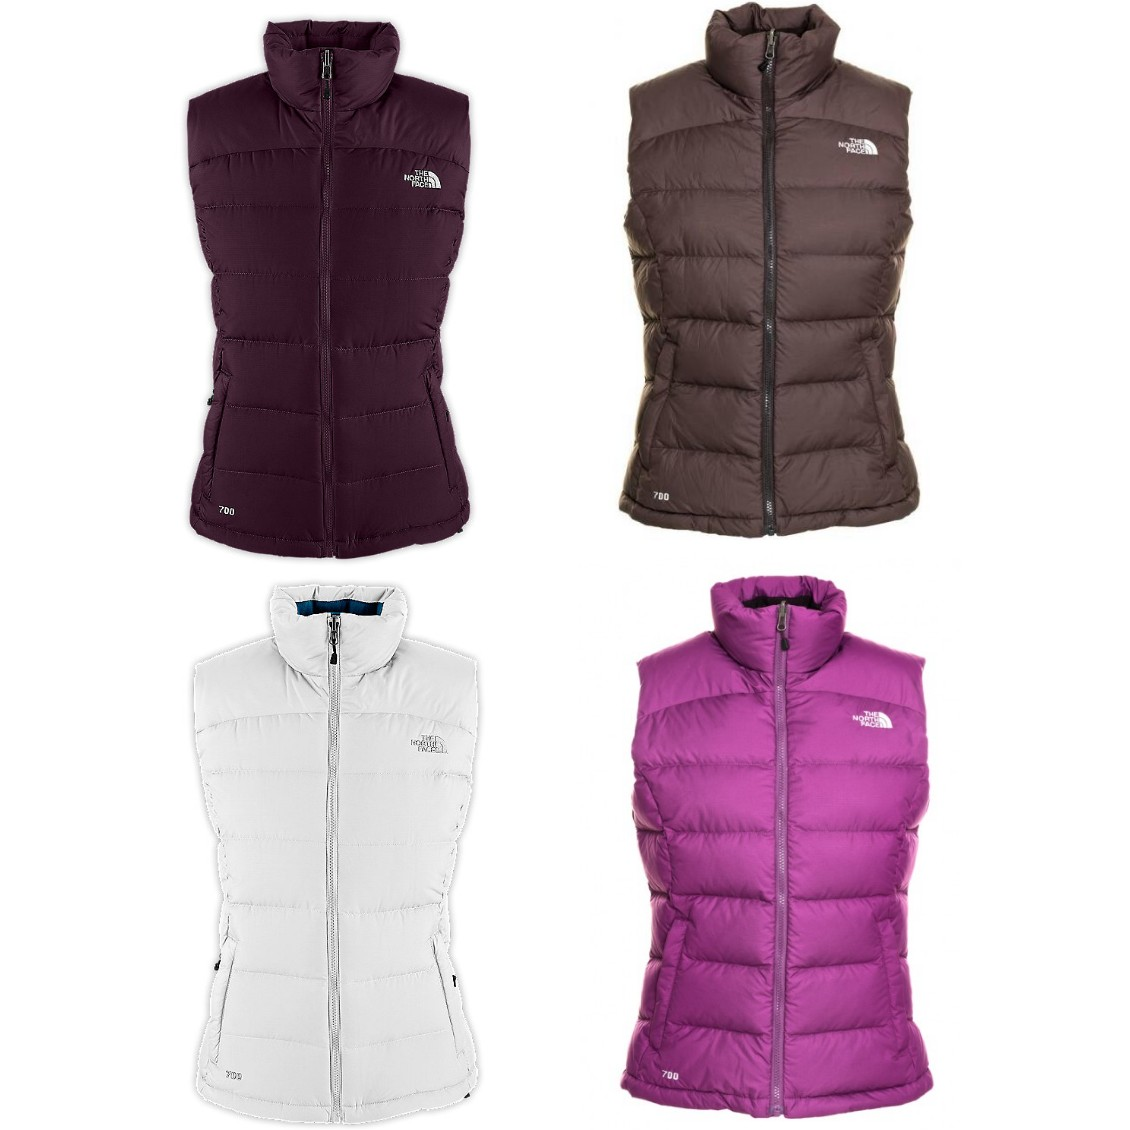 the north face nuptse 2 vest damen weste lila braun ebay. Black Bedroom Furniture Sets. Home Design Ideas